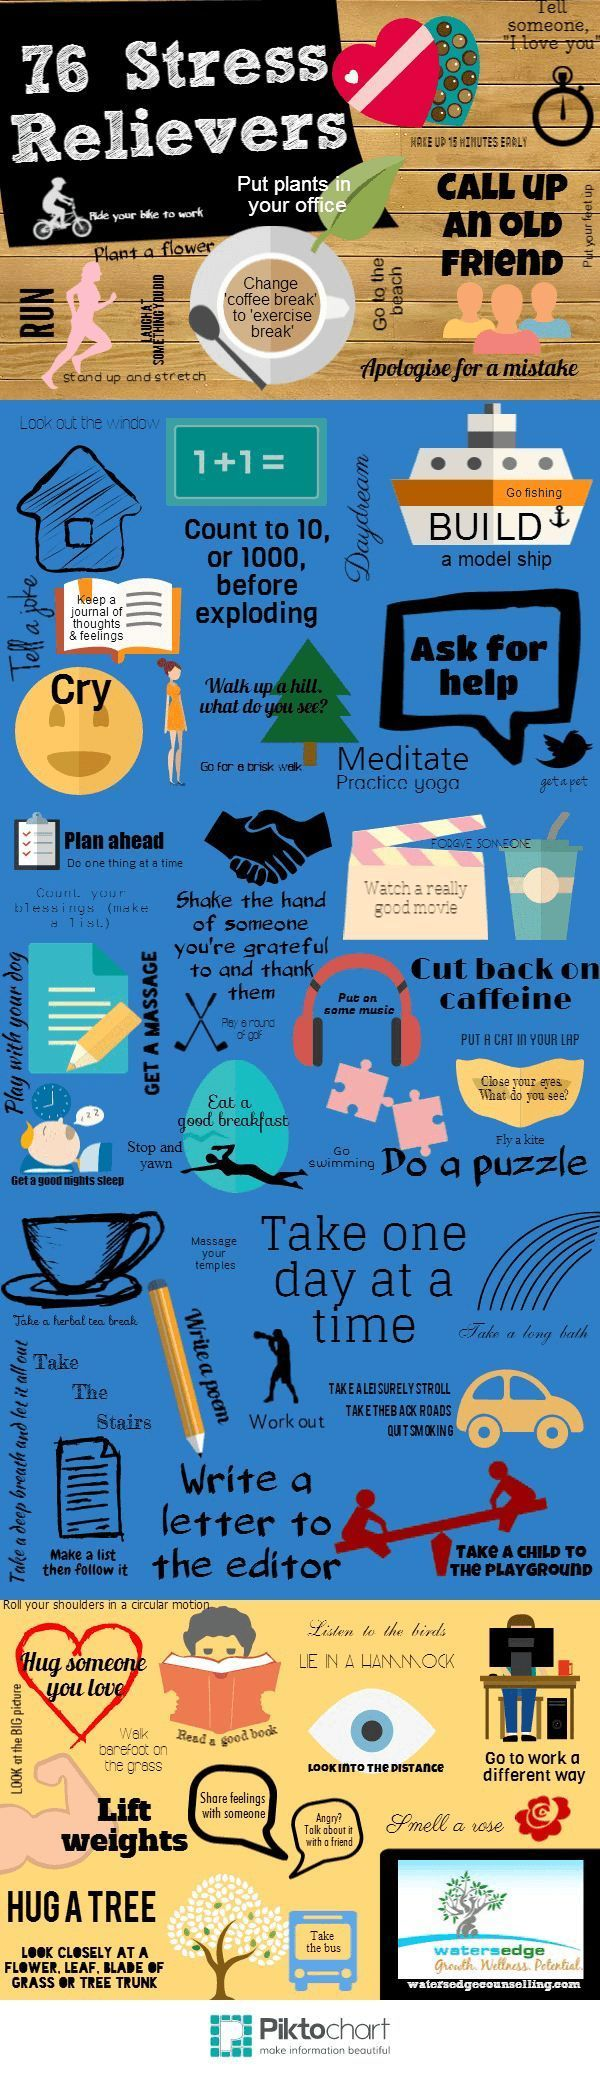 76 Stress Relievers - give these a try when you've had a rough day.